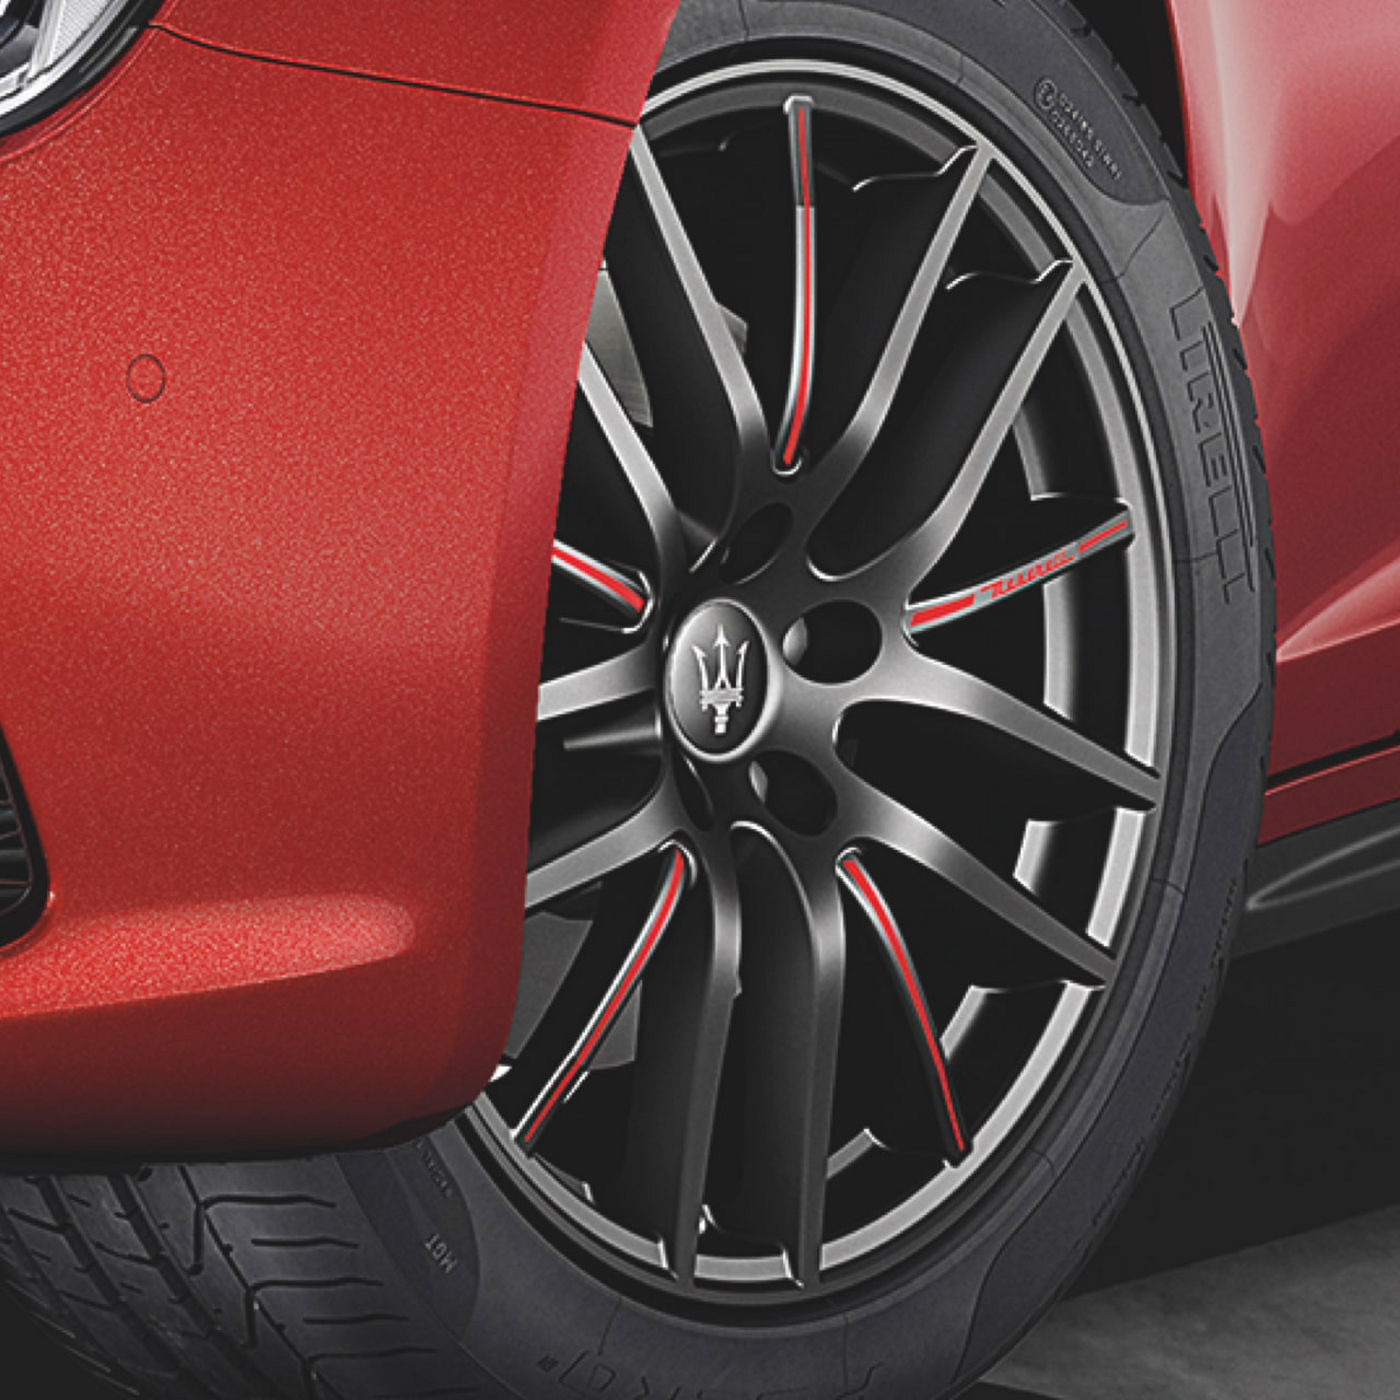 Maserati Ghibli tyres and rims